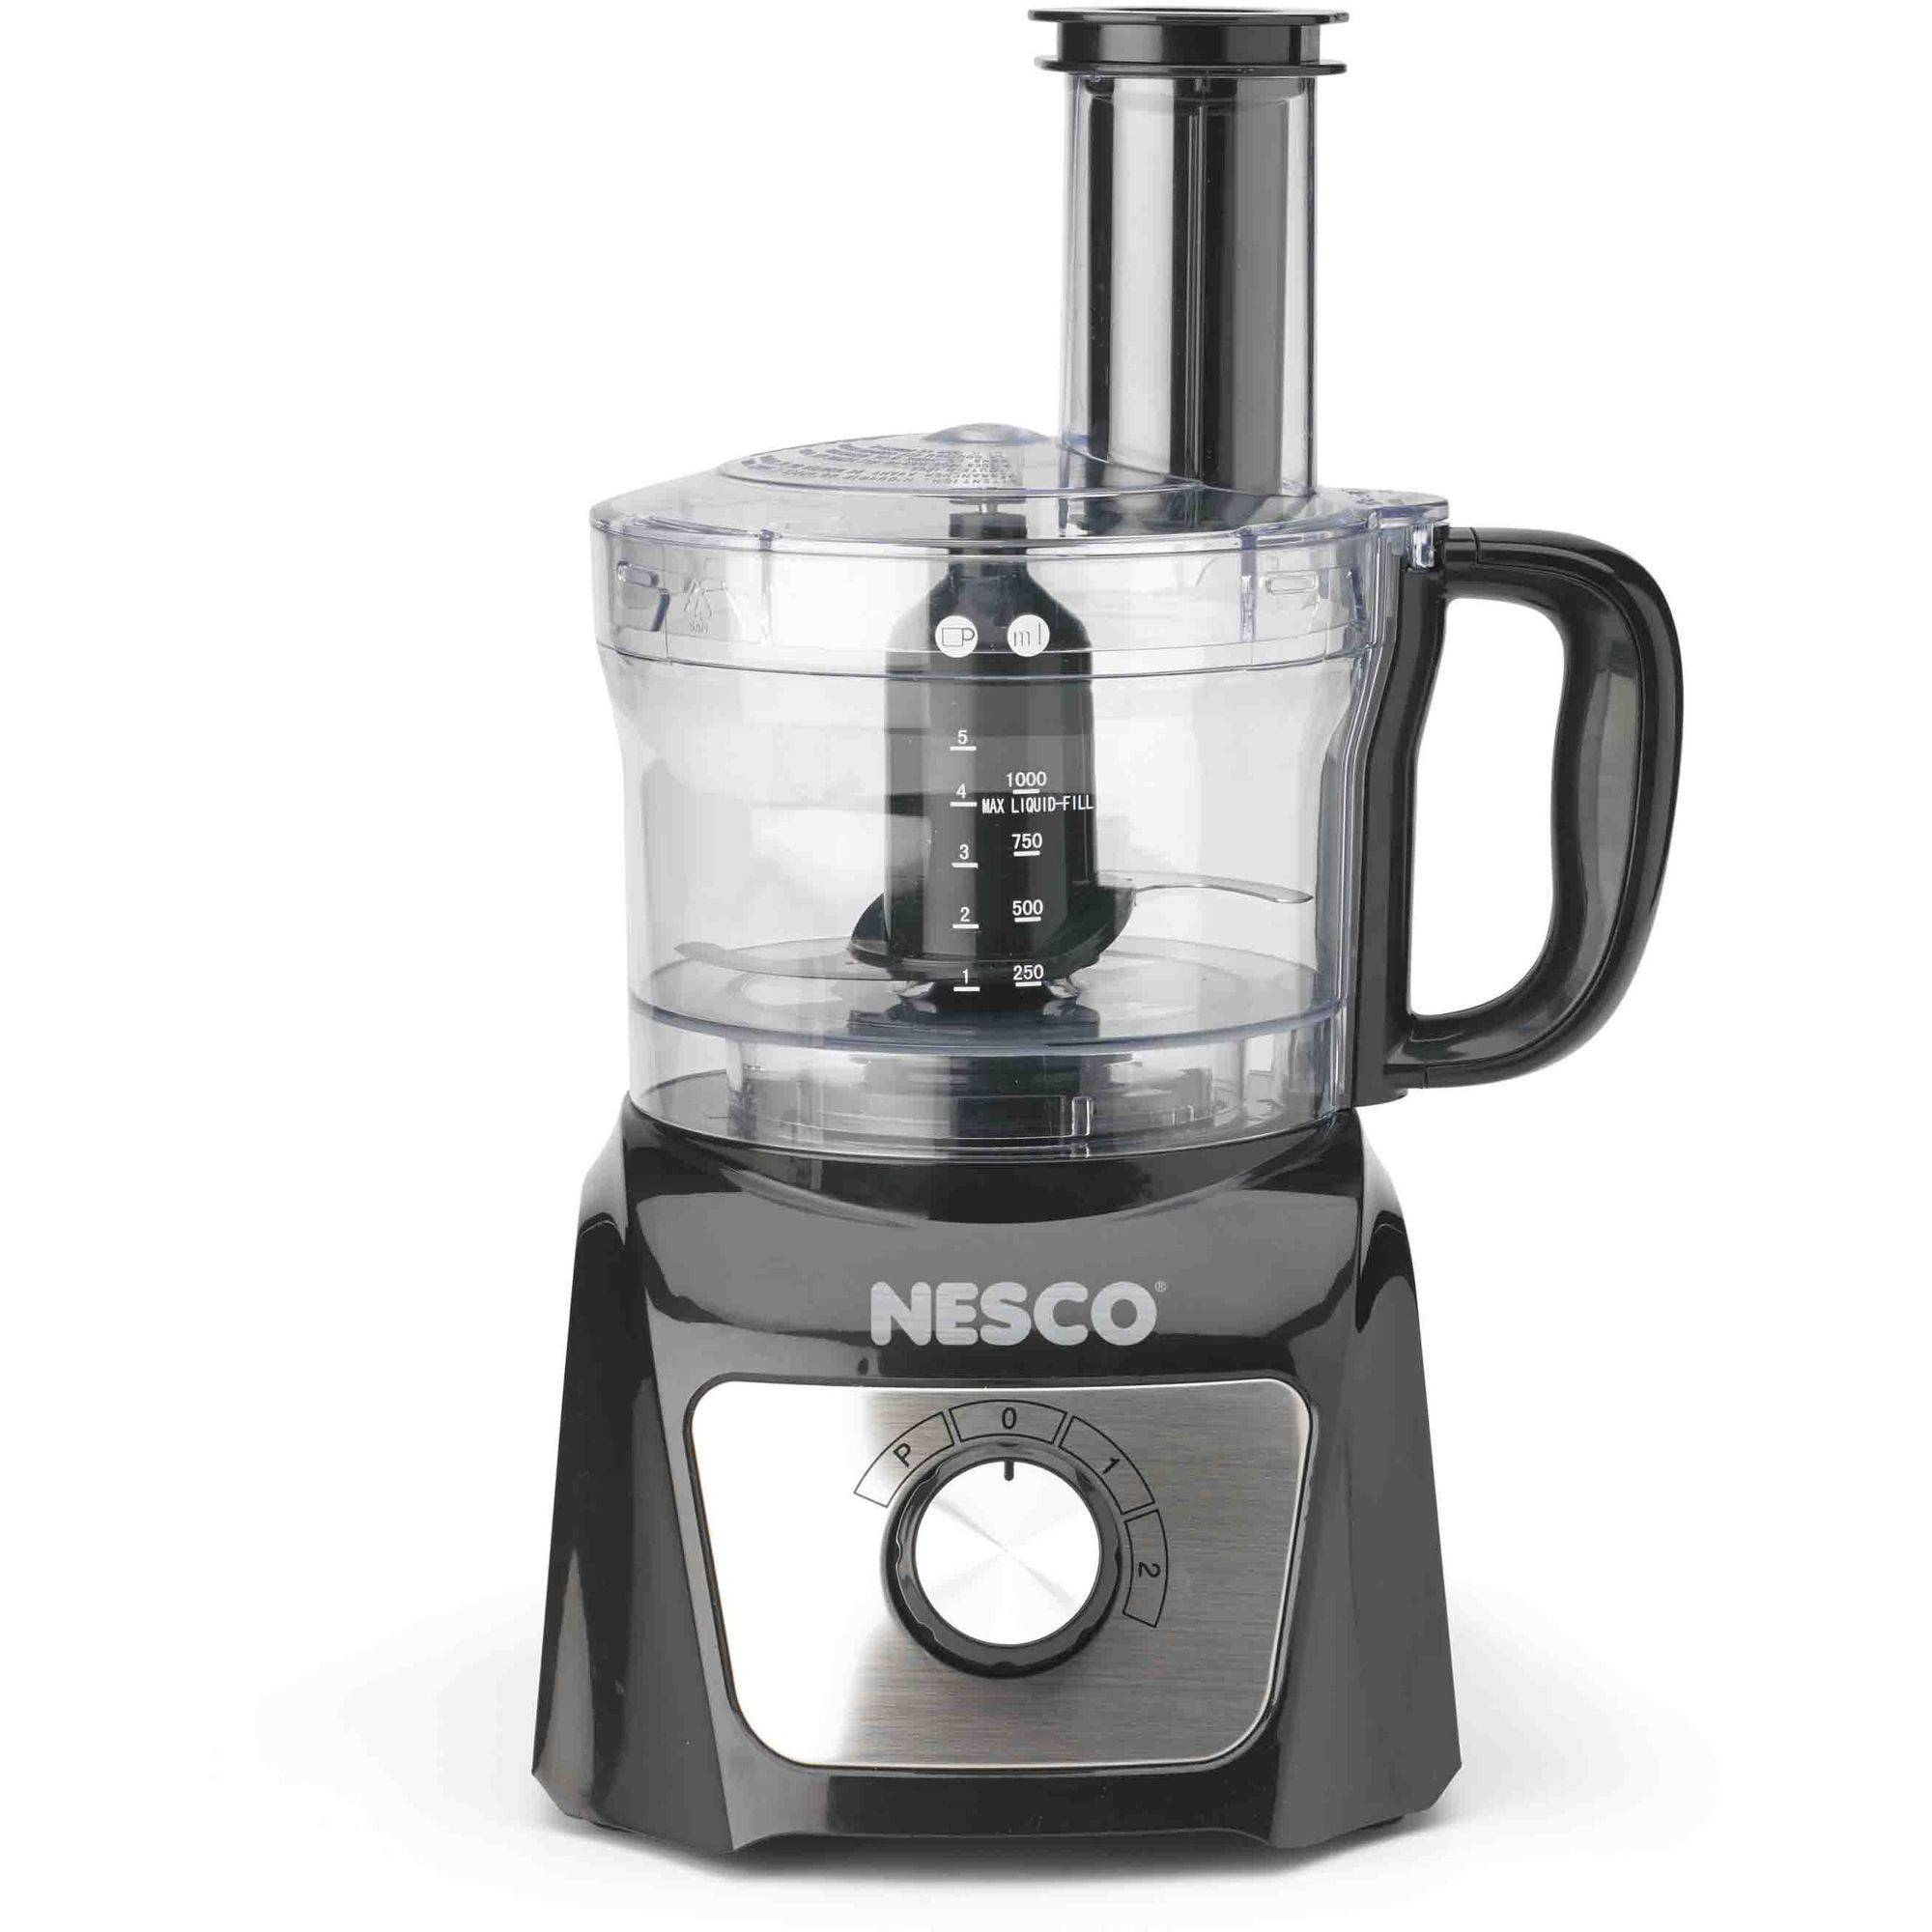 Nesco 500W 8-Cup Food Processor